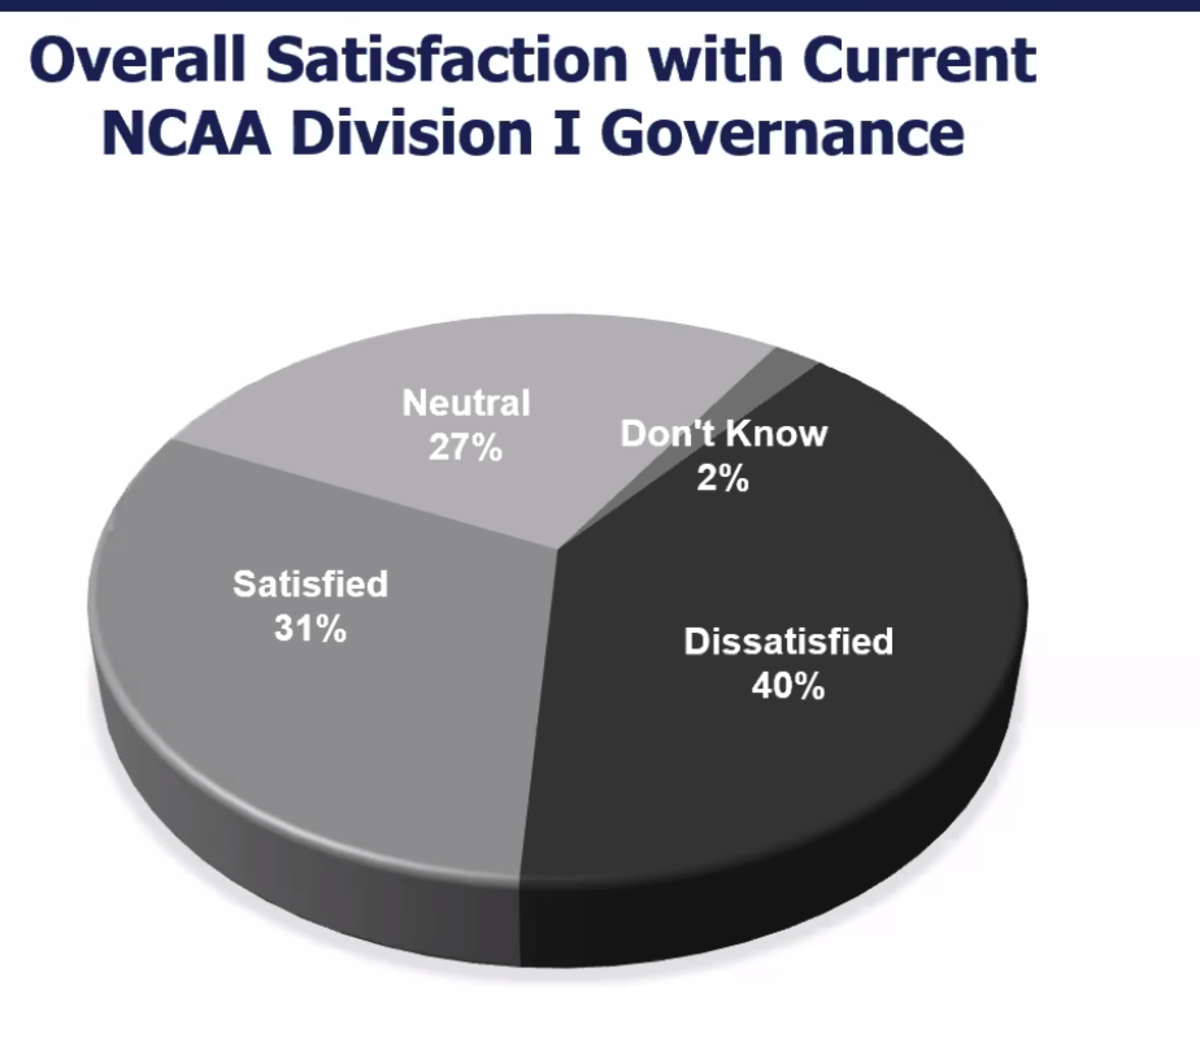 Overall satisfaction with current NCAA Division I governance